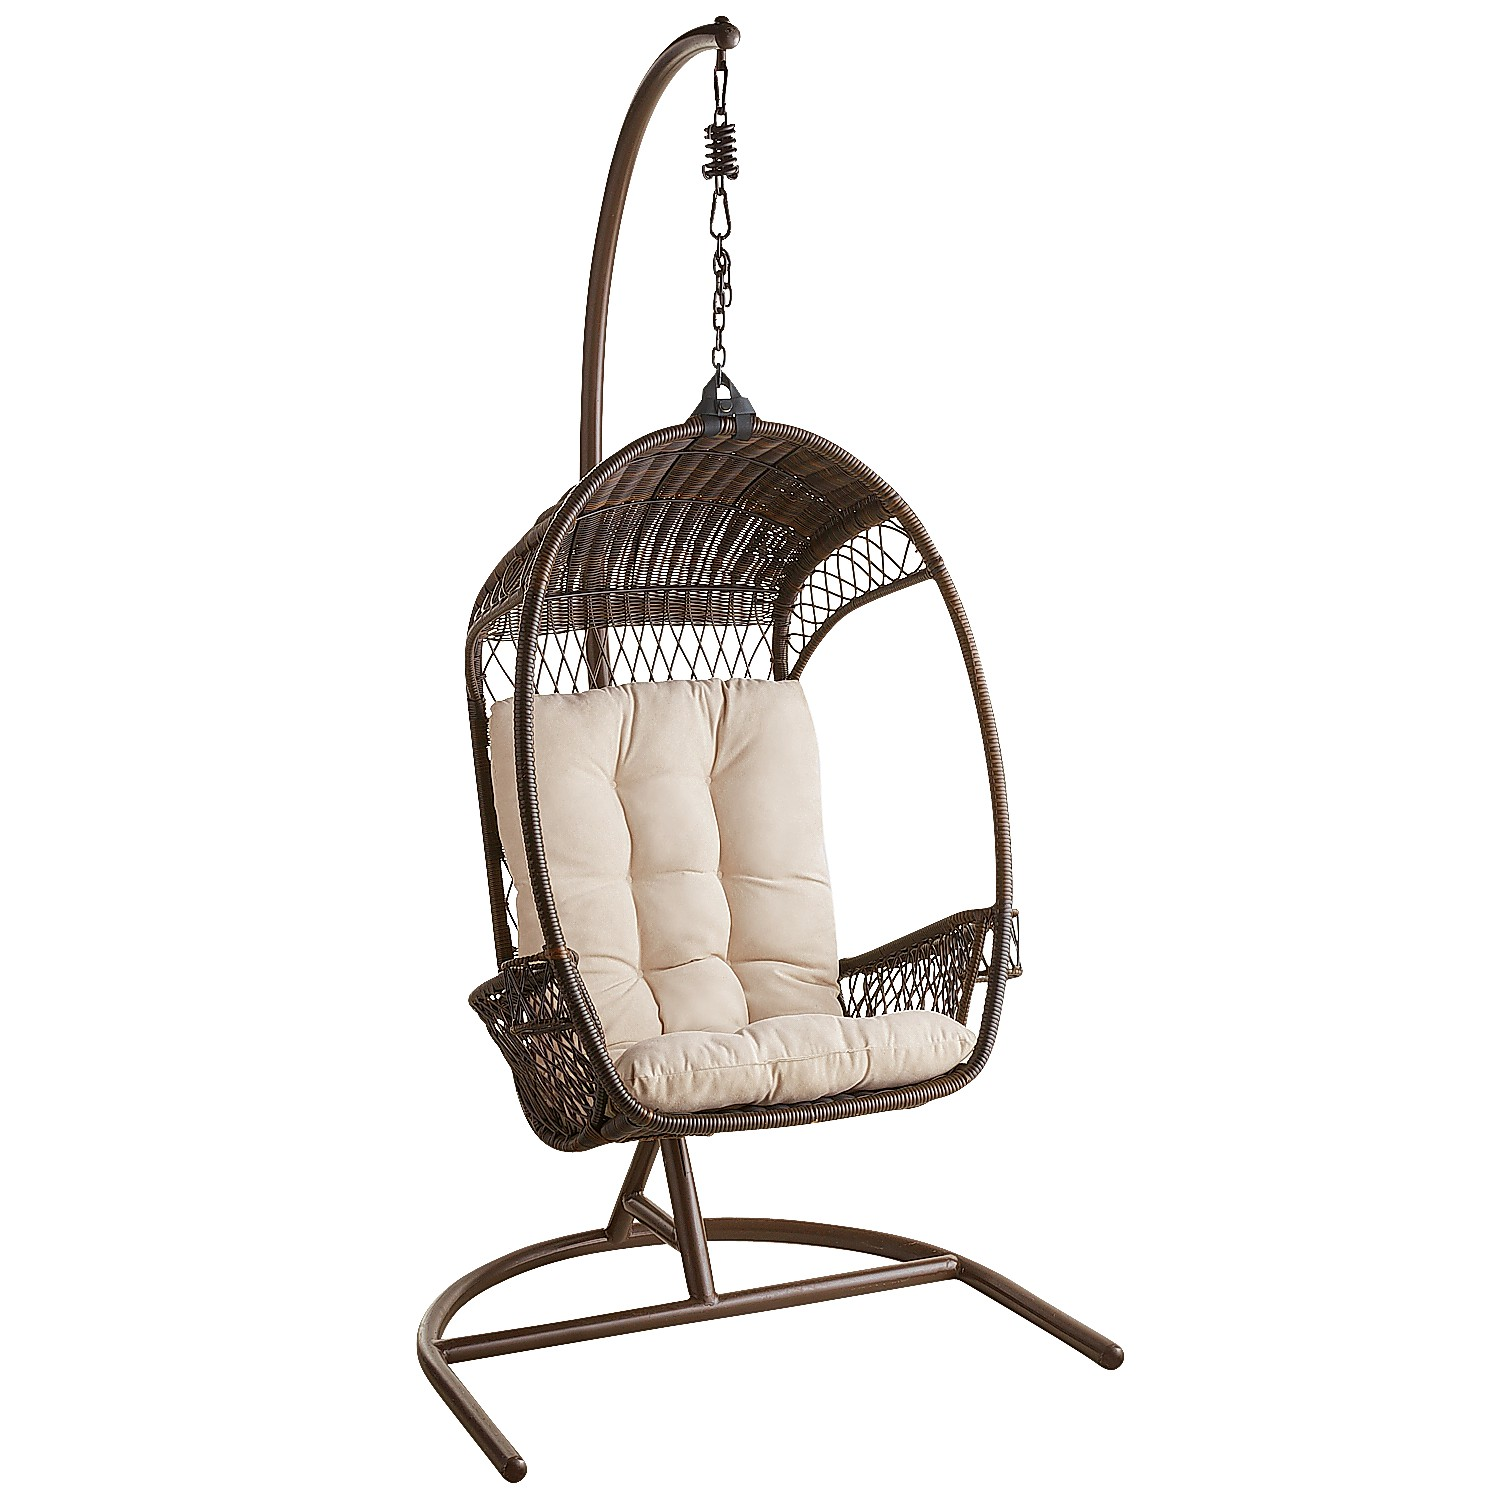 Garden Chairs Swings Benches Leaf Shape Chair Only No Stand Rattan Hanging Chair Kdl Com Ng